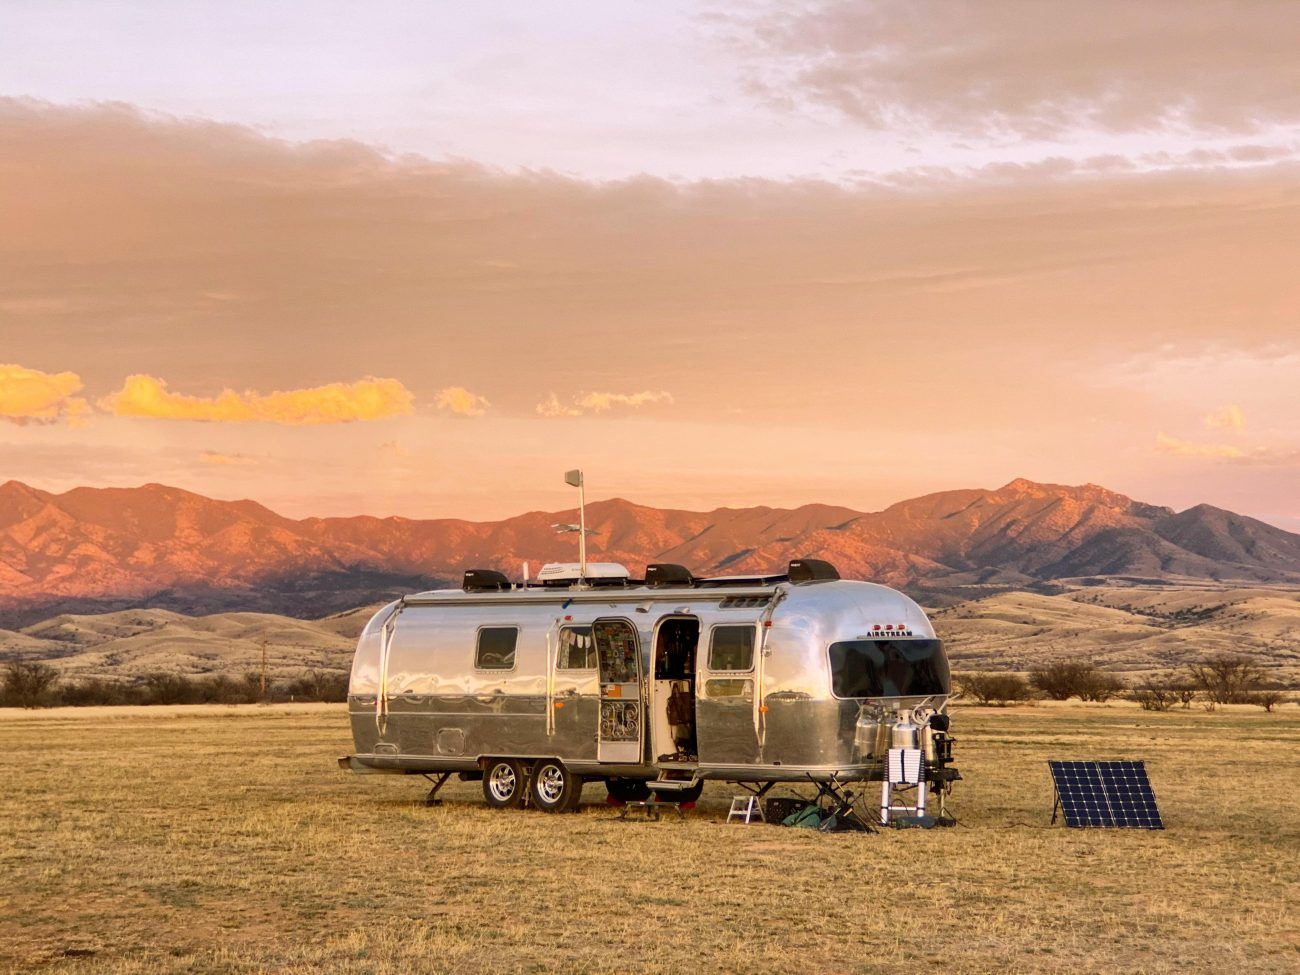 Airstream in Arizona